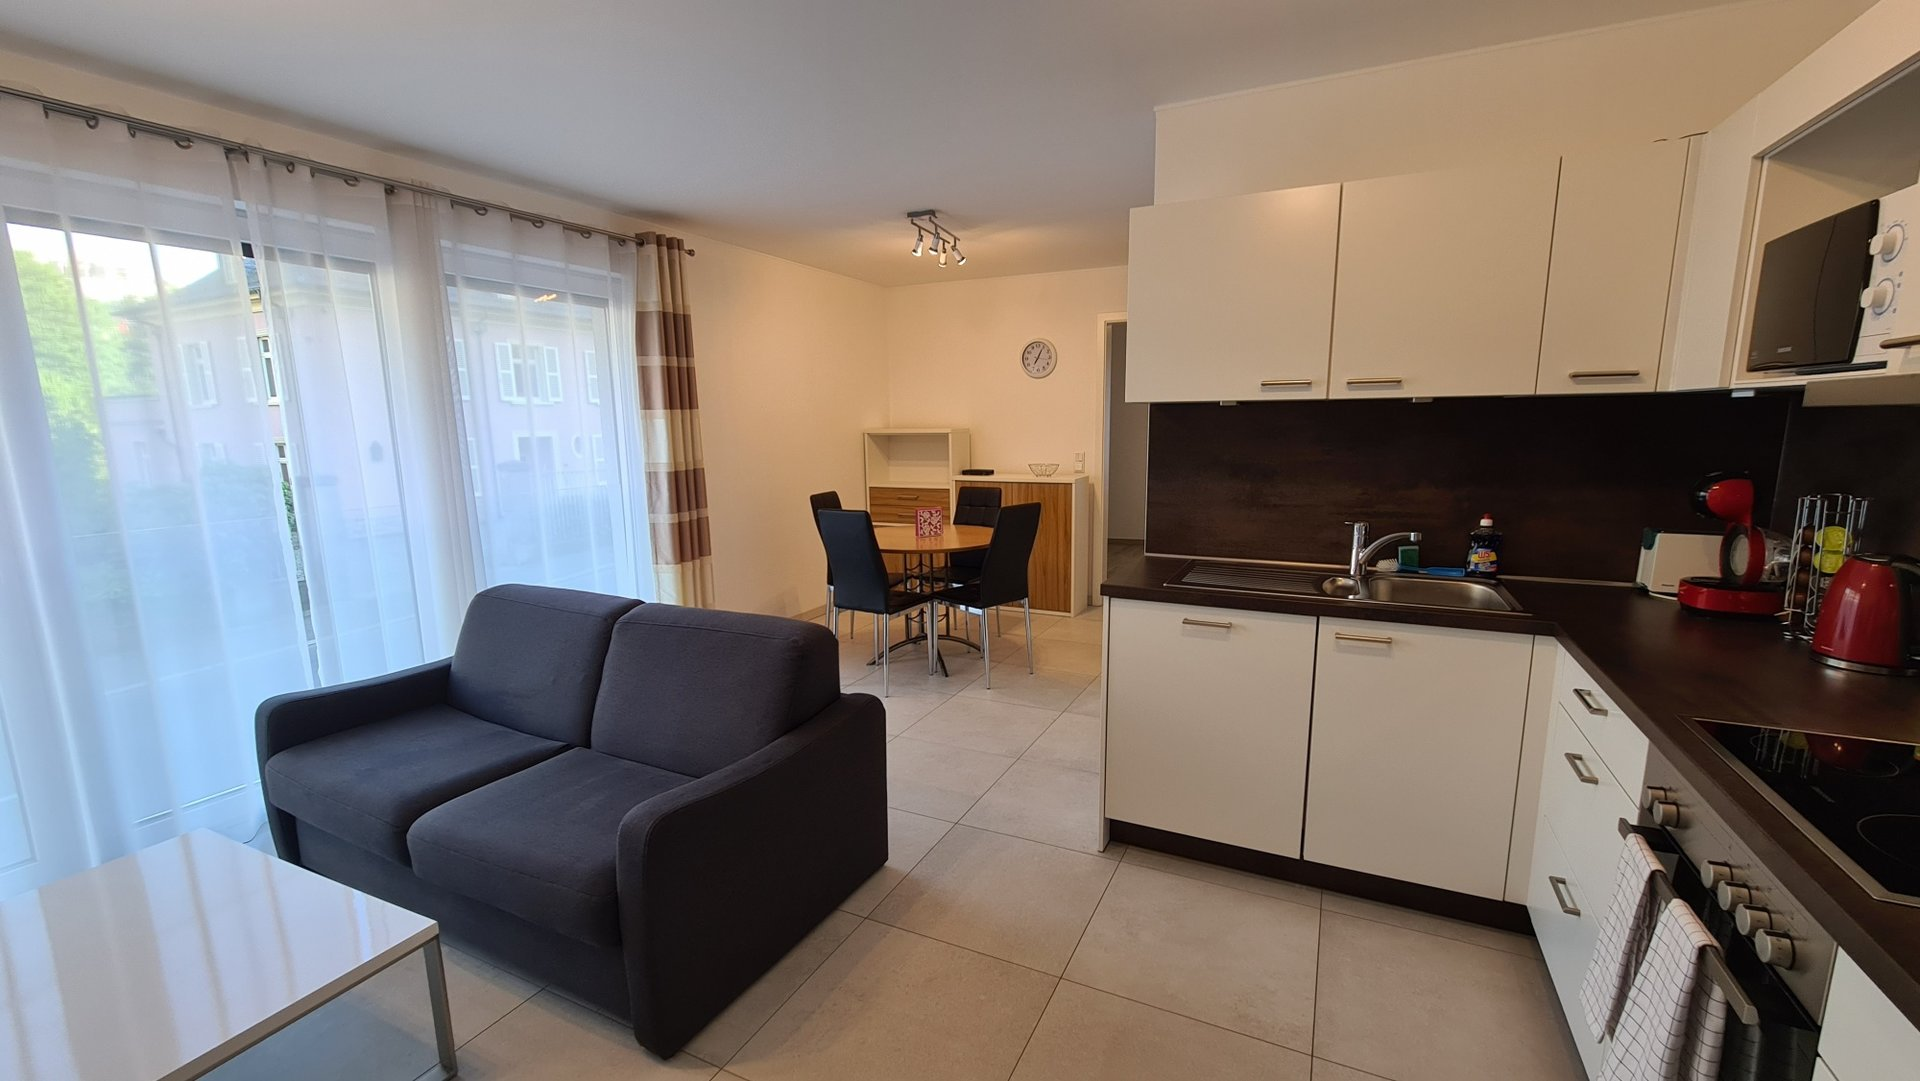 Splendide one bedroom futnished appartemnt in city center